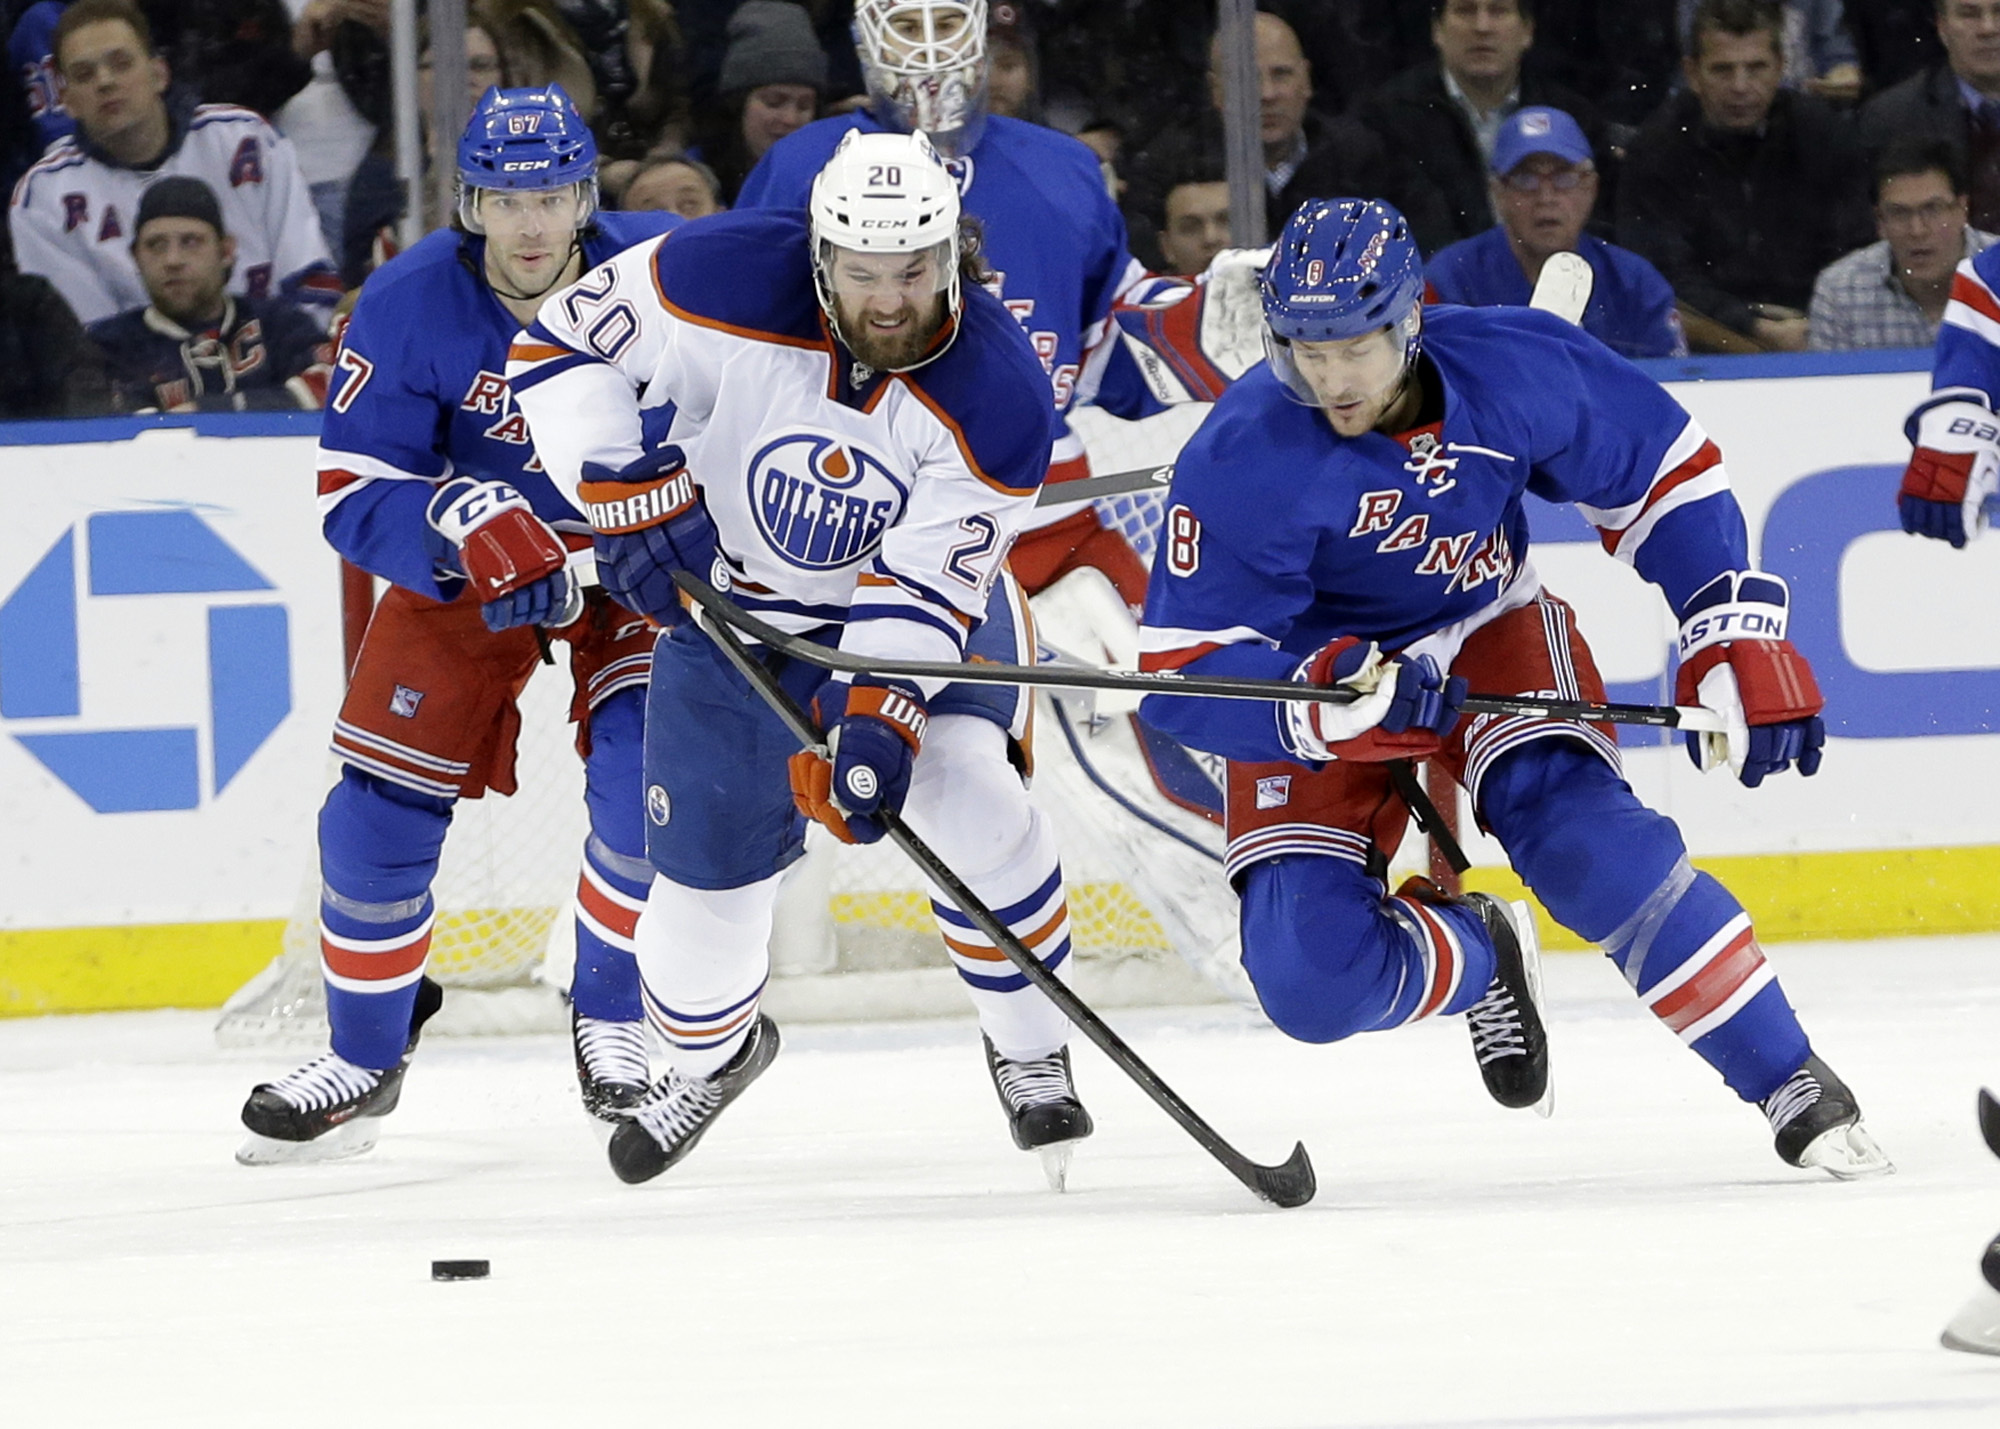 Edmonton Oilers' Luke Gazdic (20) and New York Rangers' Kevin Klein (8) fight for control of the puck during the second period of an NHL hockey game on Thursday, Feb. 6, 2014, in New York